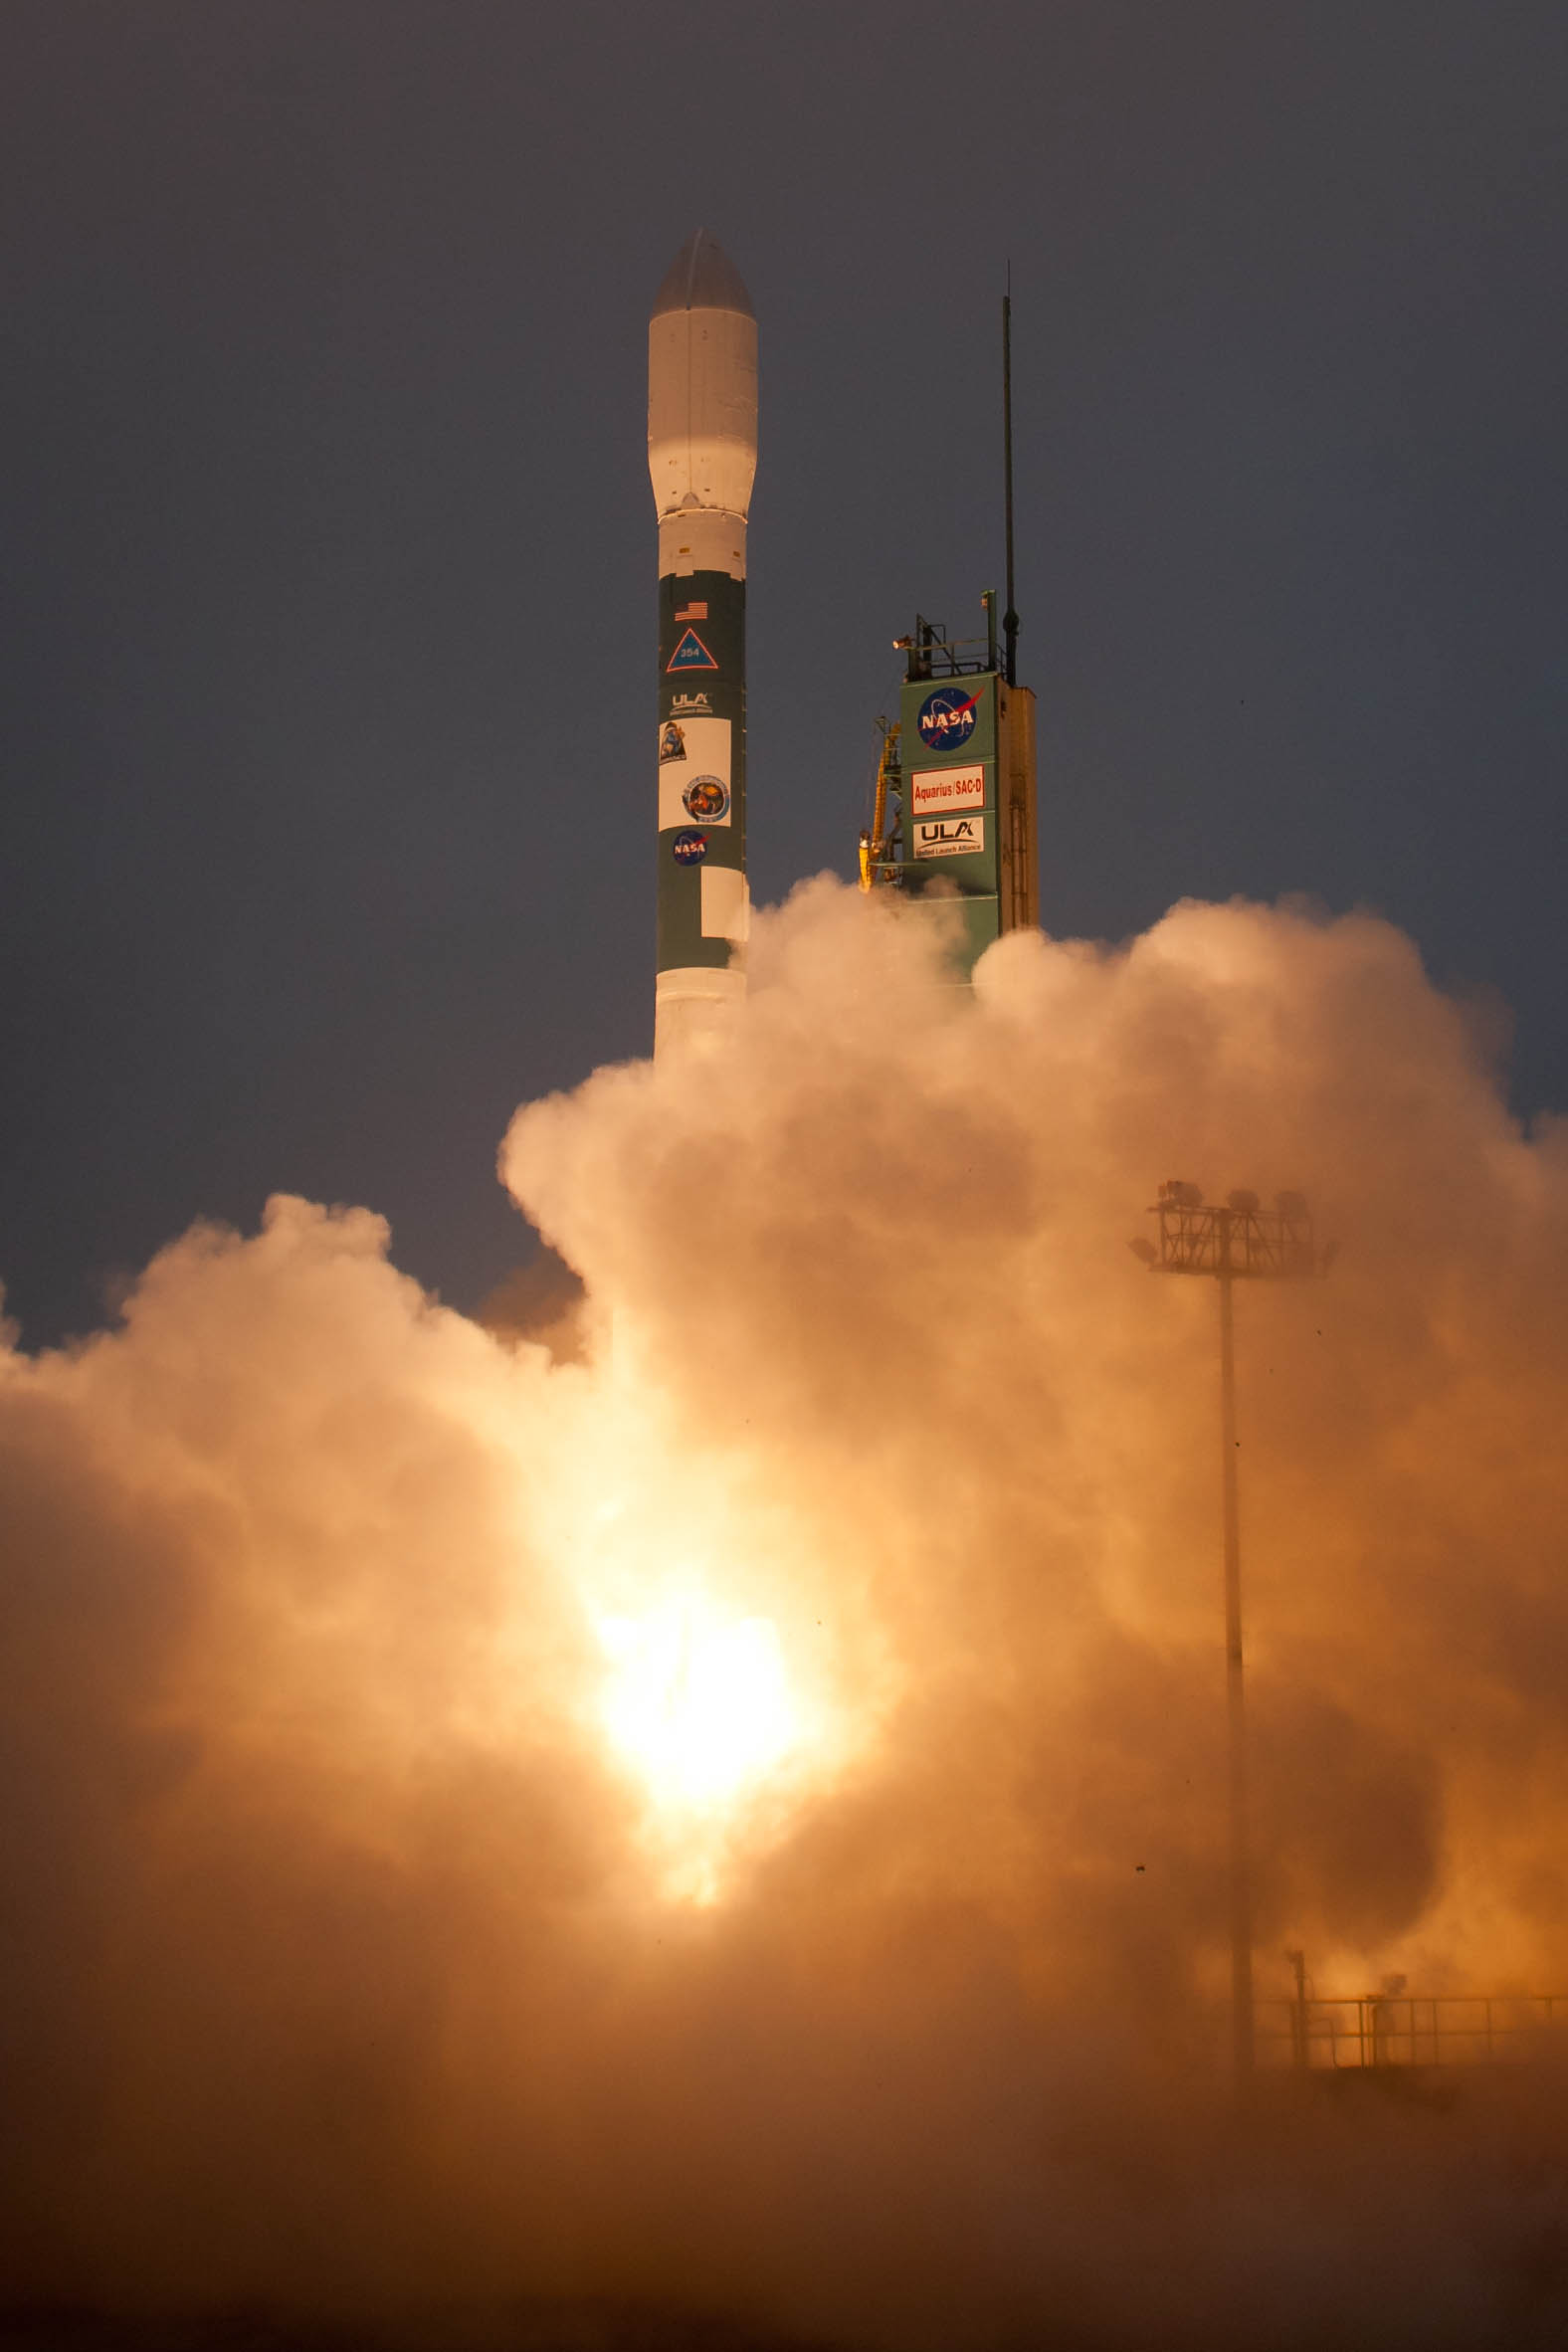 aquarius spacecraft launch - photo #10